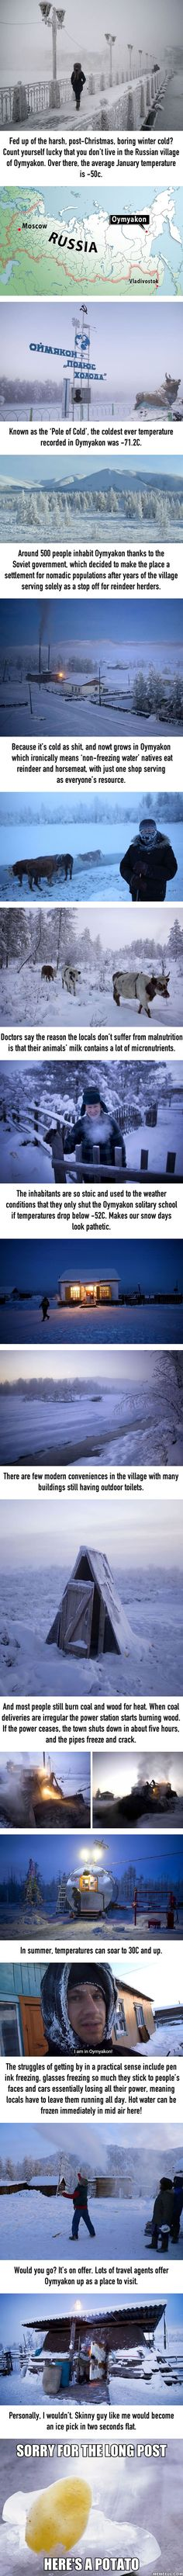 Welcome To Oymyakon, World's Coldest Village Where Average Temperature In Winter Is -50°C